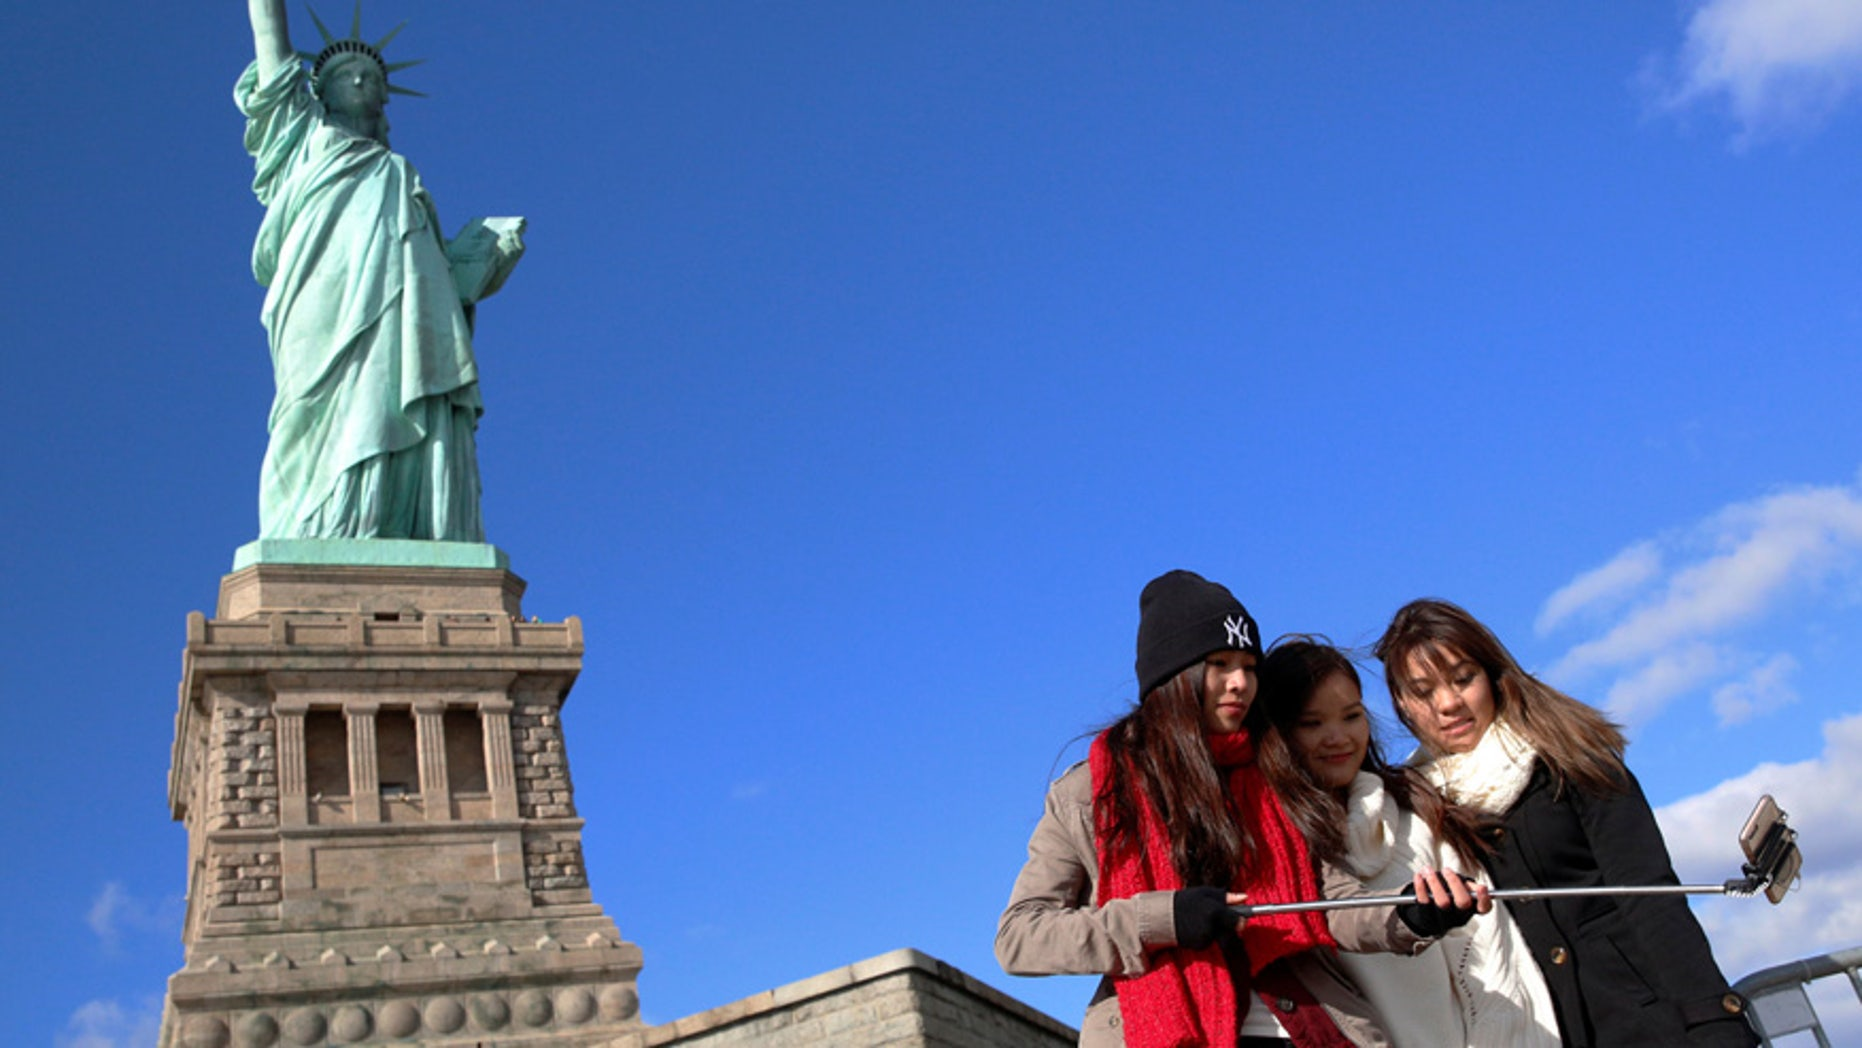 Brazilian and Australian tourists are reportedly the biggest spenders.